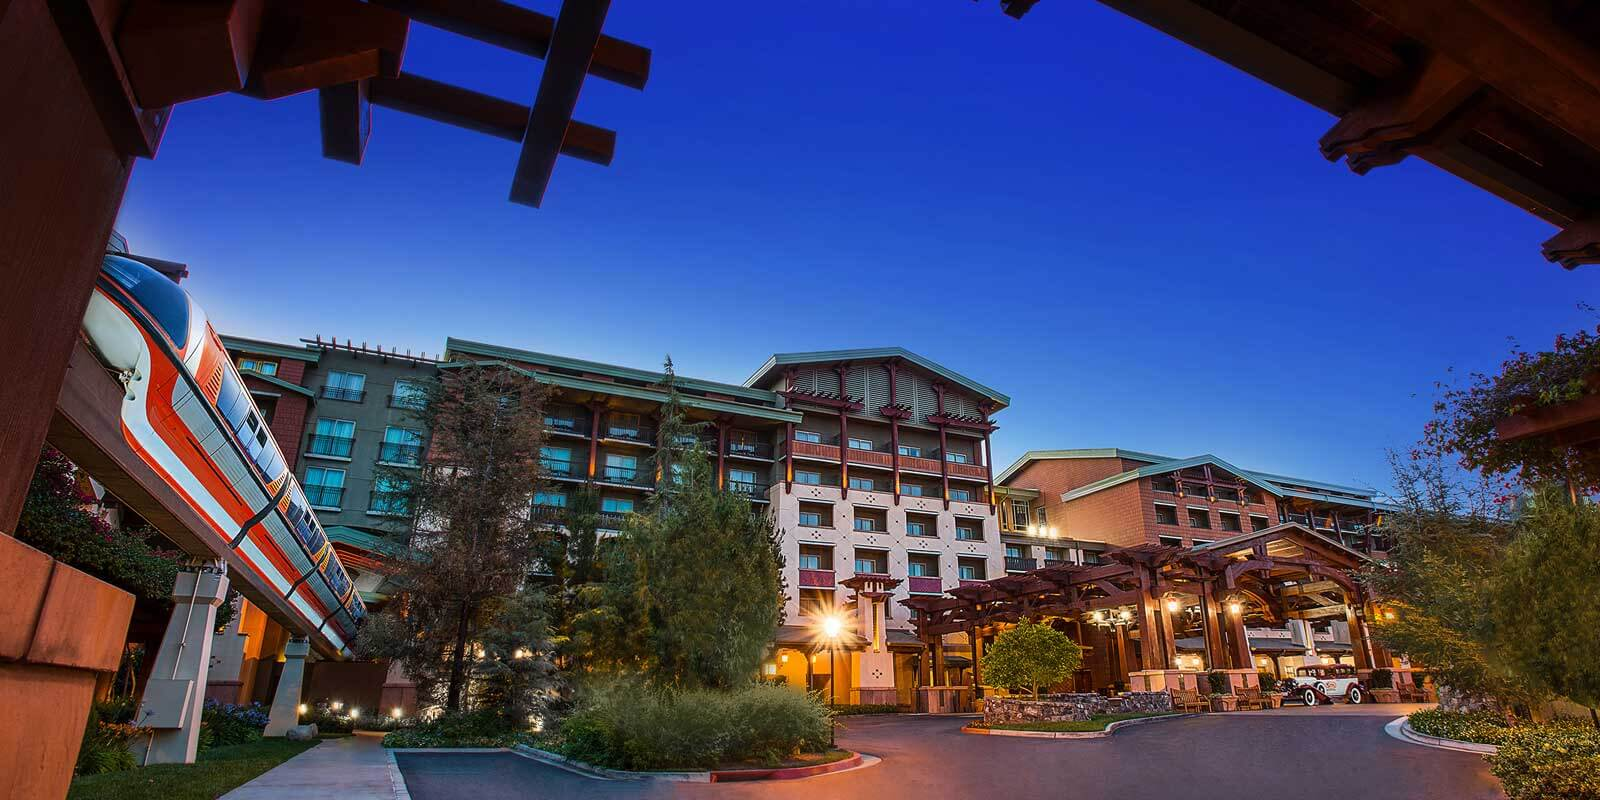 Landscape shot of Disney's Grand Californian Villas from underneath the monorail.